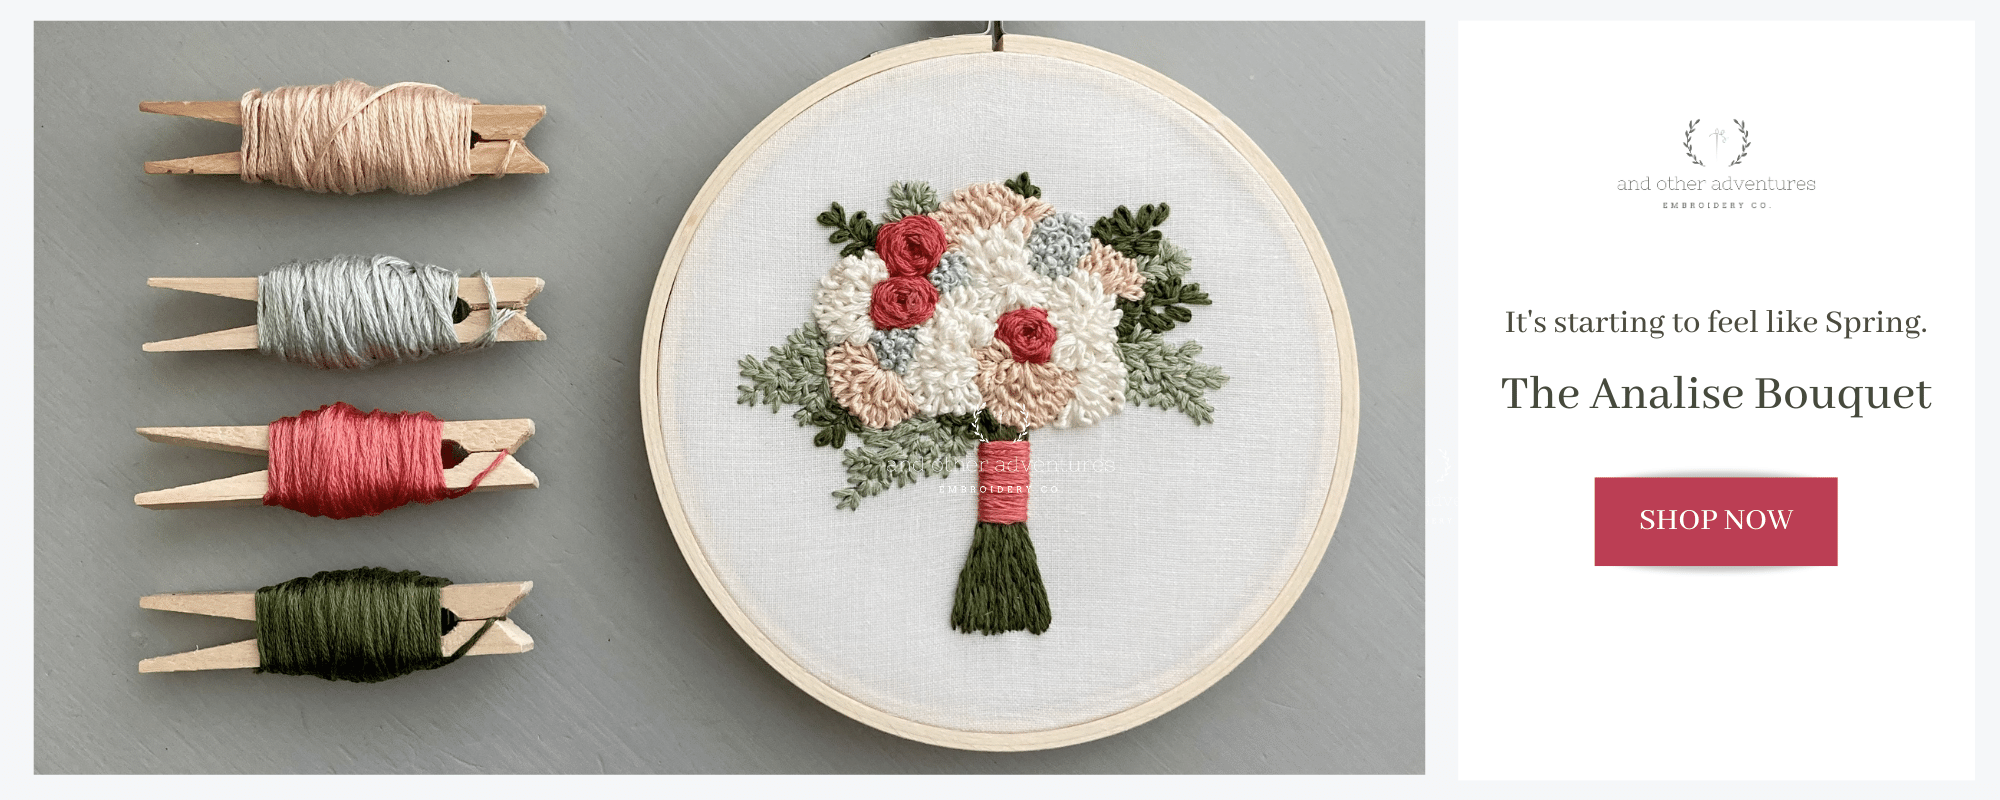 The Analise Bouquet - It's starting to feel like spring. - And Other Adventures Embroidery Co